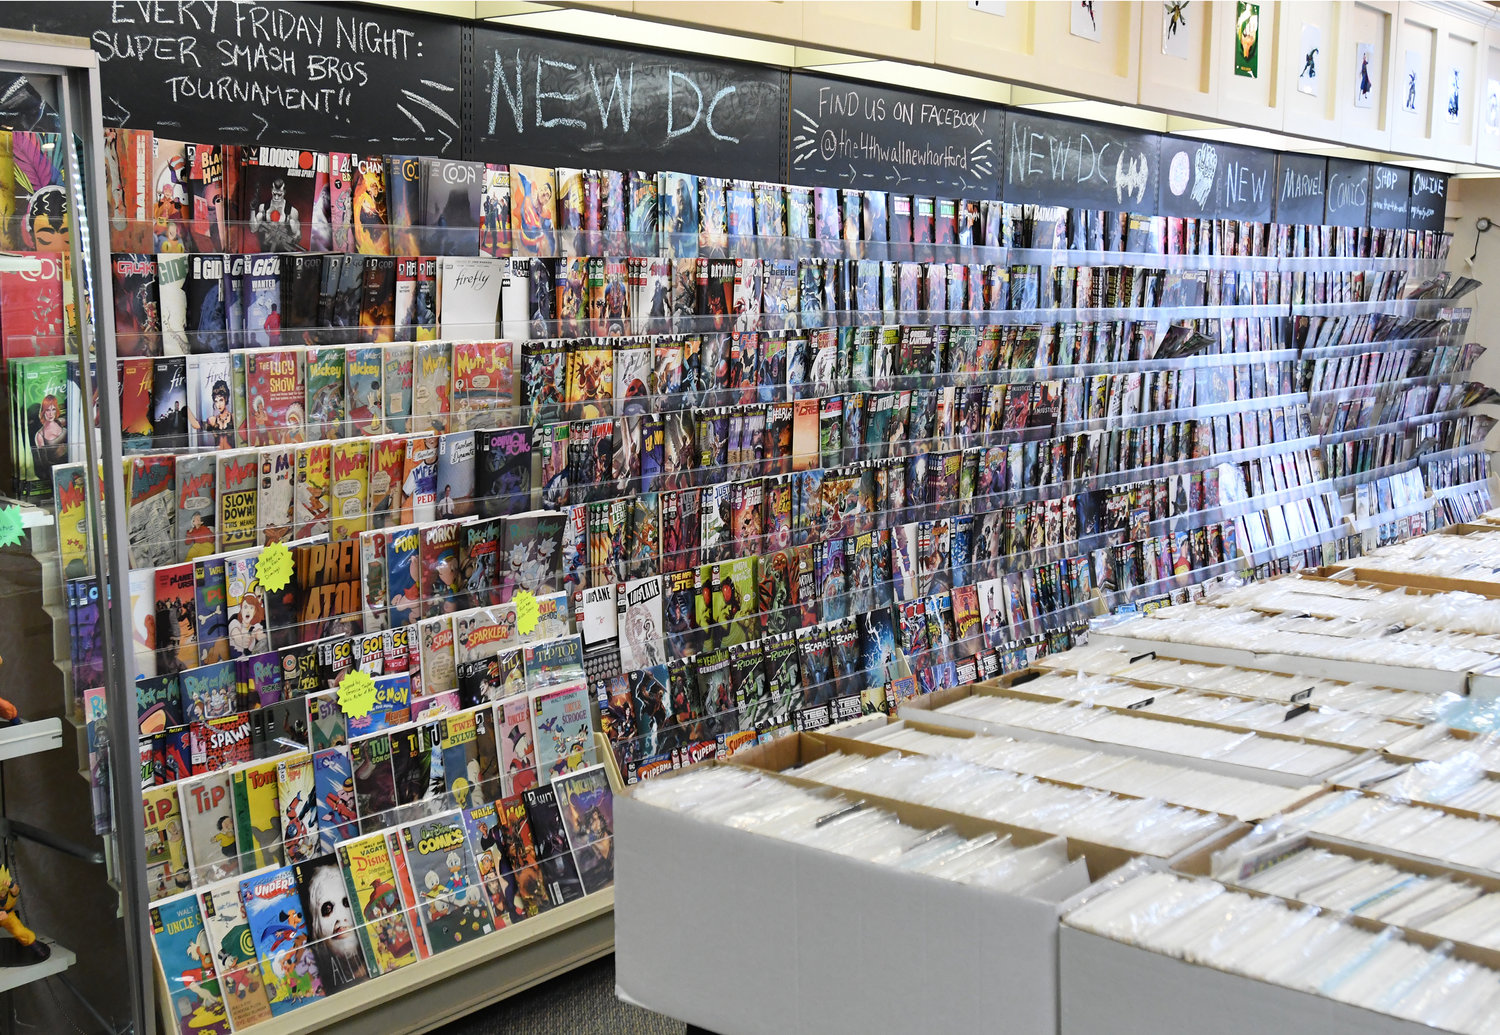 NEW AND OLD COMICS — The 4th Wall comics and collectibles shop features both brand new comics and back issues from all major publishers.